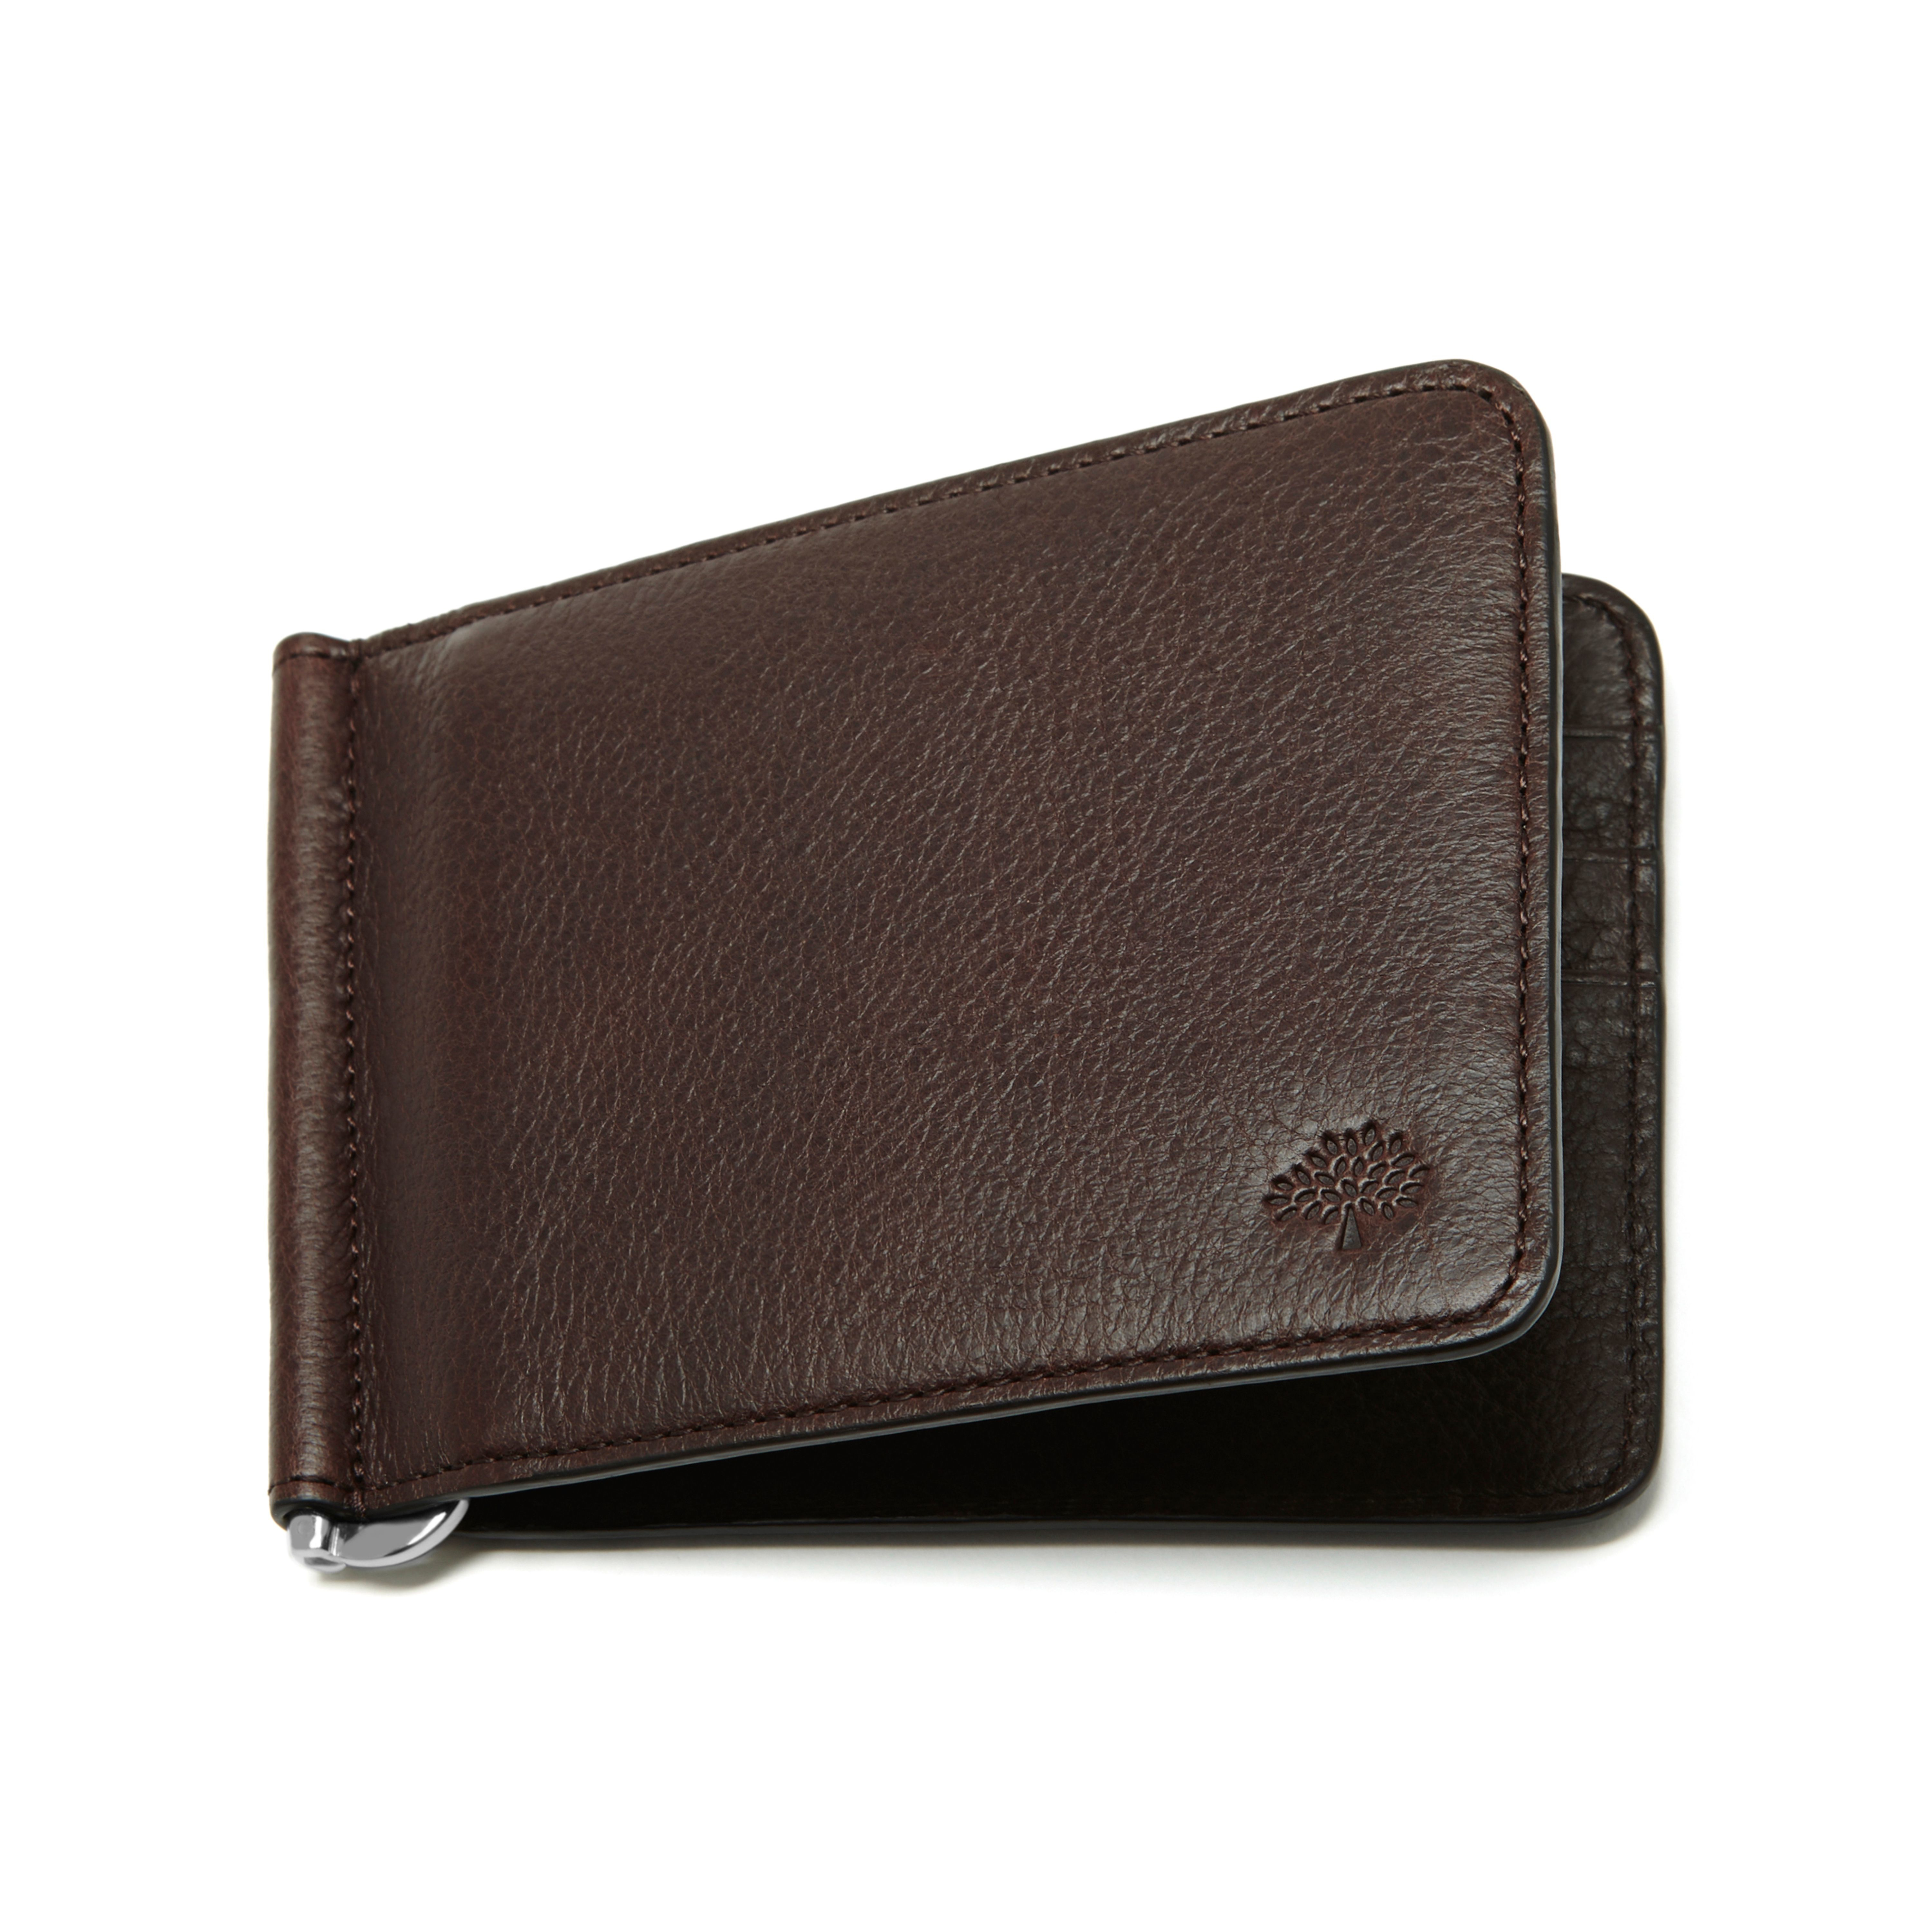 39f6c8e6b4 ... germany lyst mulberry money clip wallet in brown for men 346d4 9b2cf